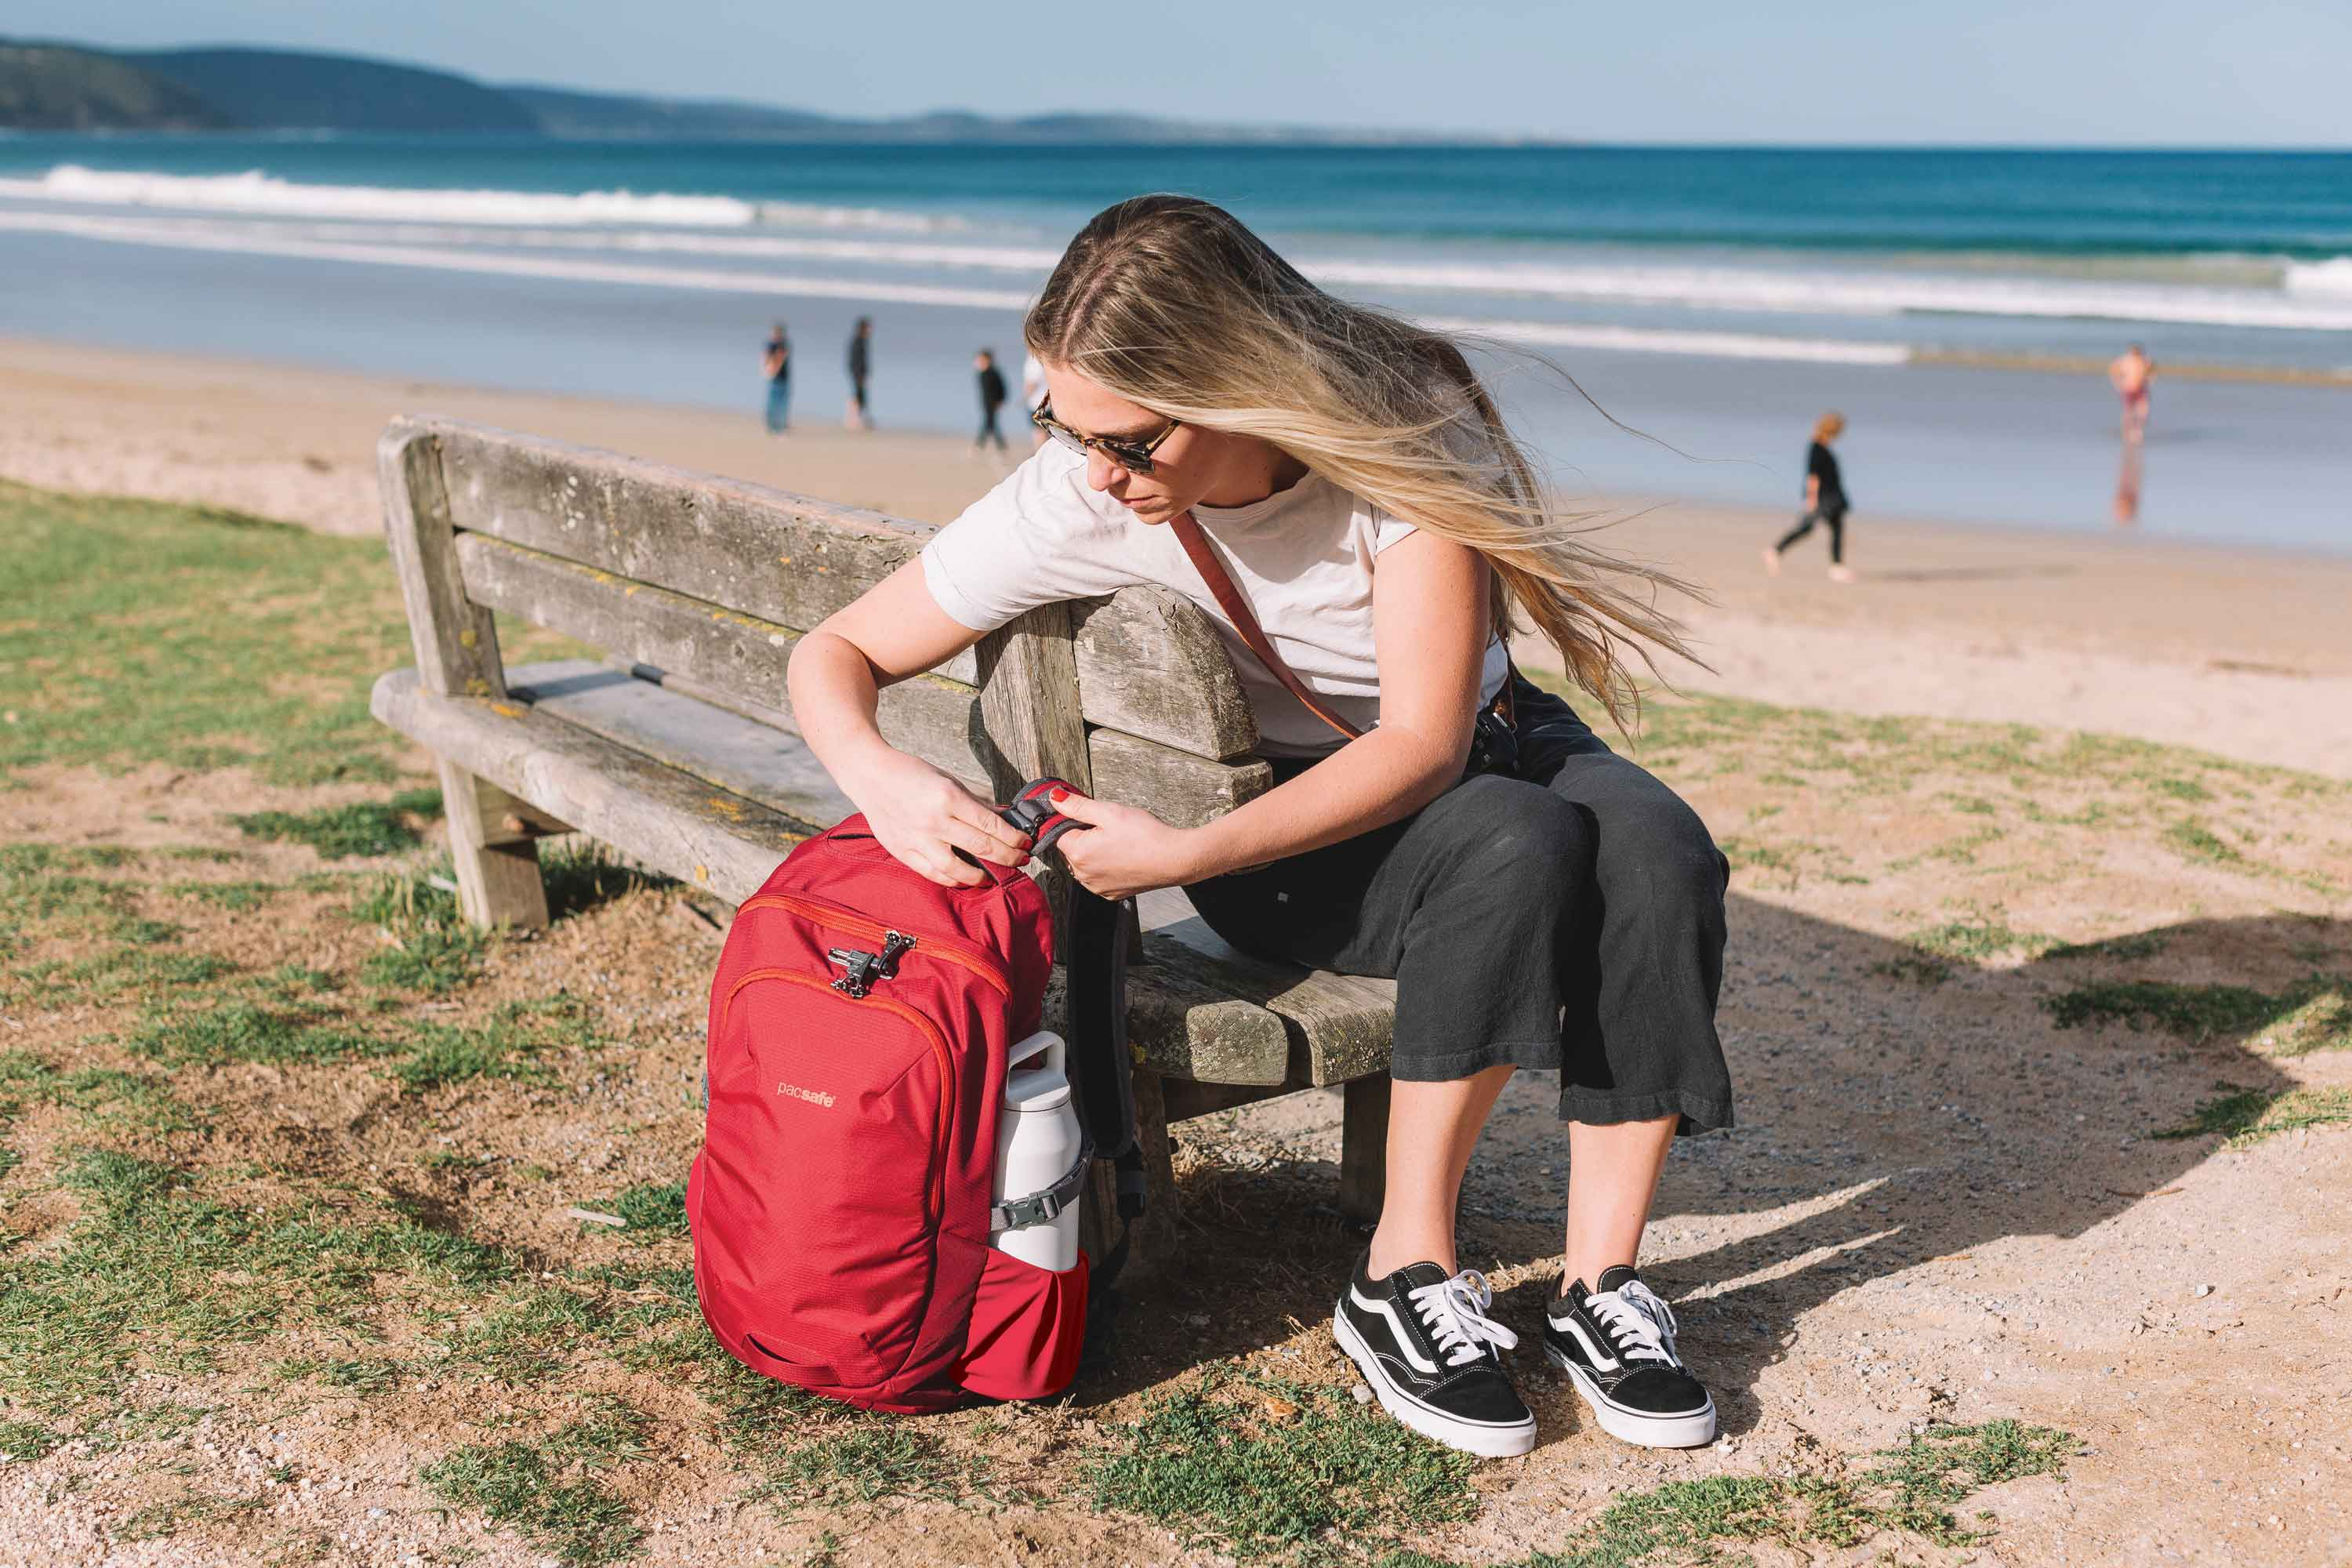 Our Community's Top Travel Safety Tips